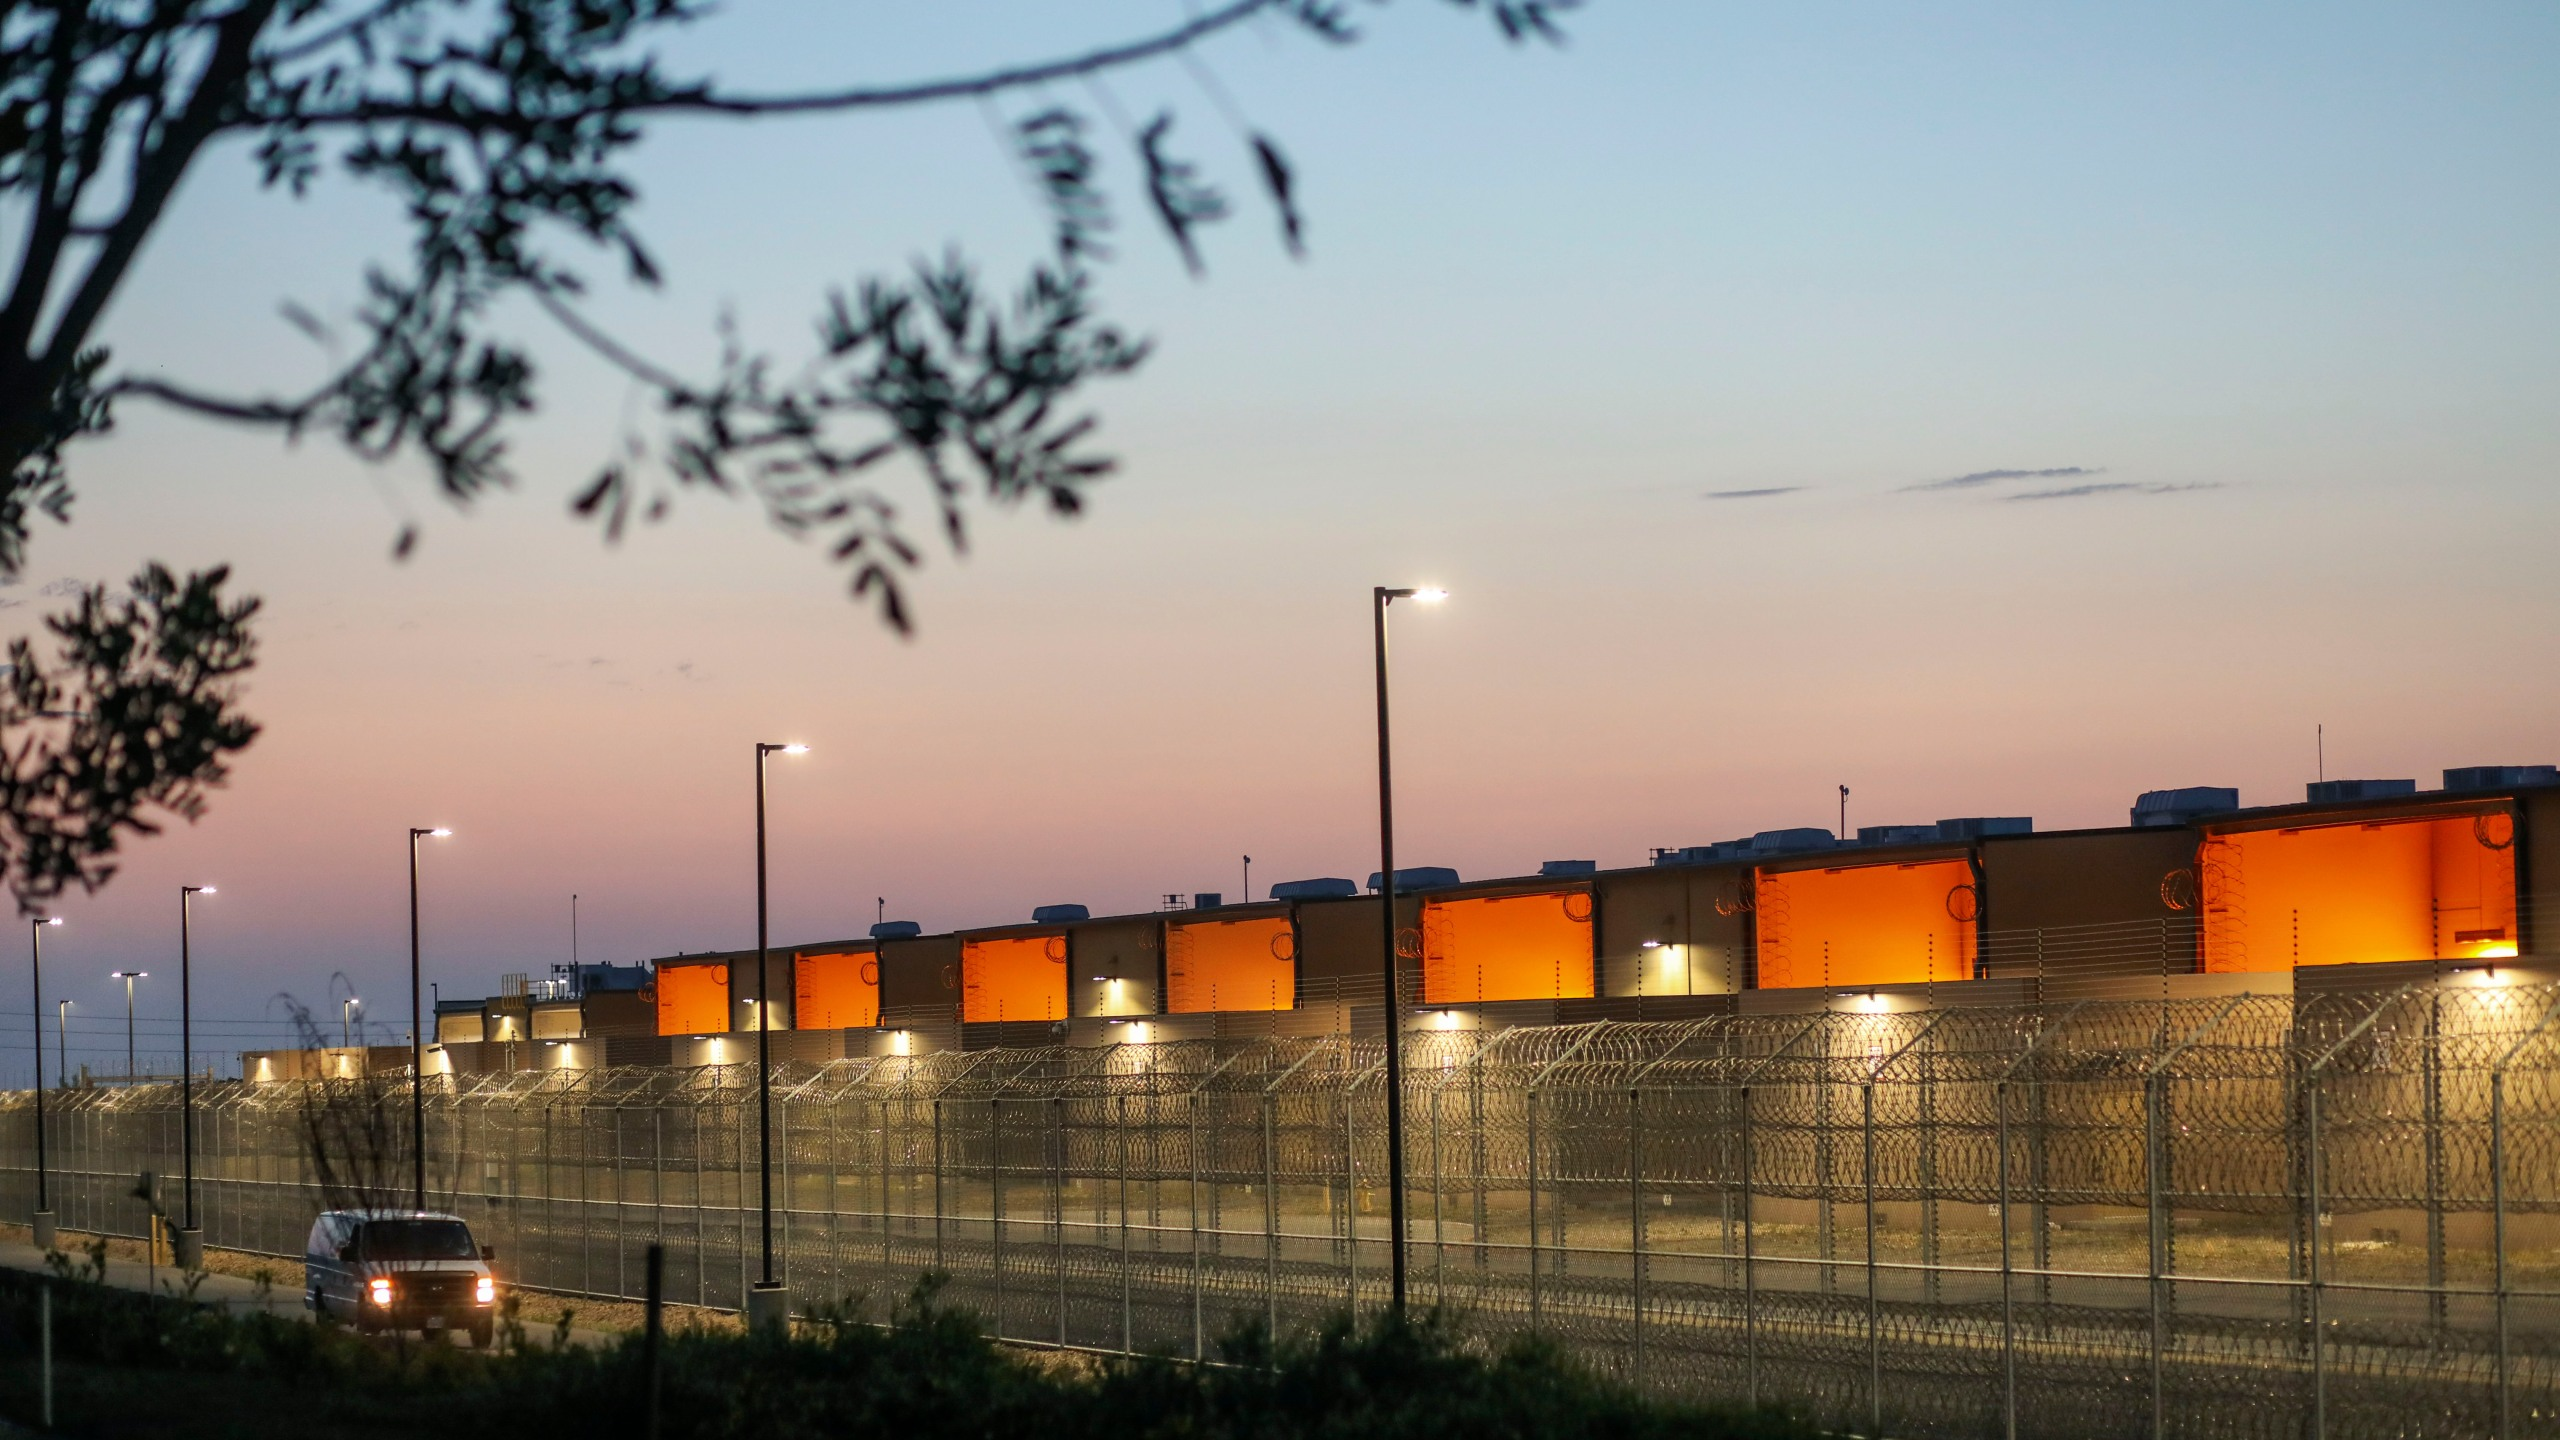 The Otay Mesa Detention Center is seen on May 9, 2020 in Otay Mesa, California.(SANDY HUFFAKER/AFP via Getty Images)